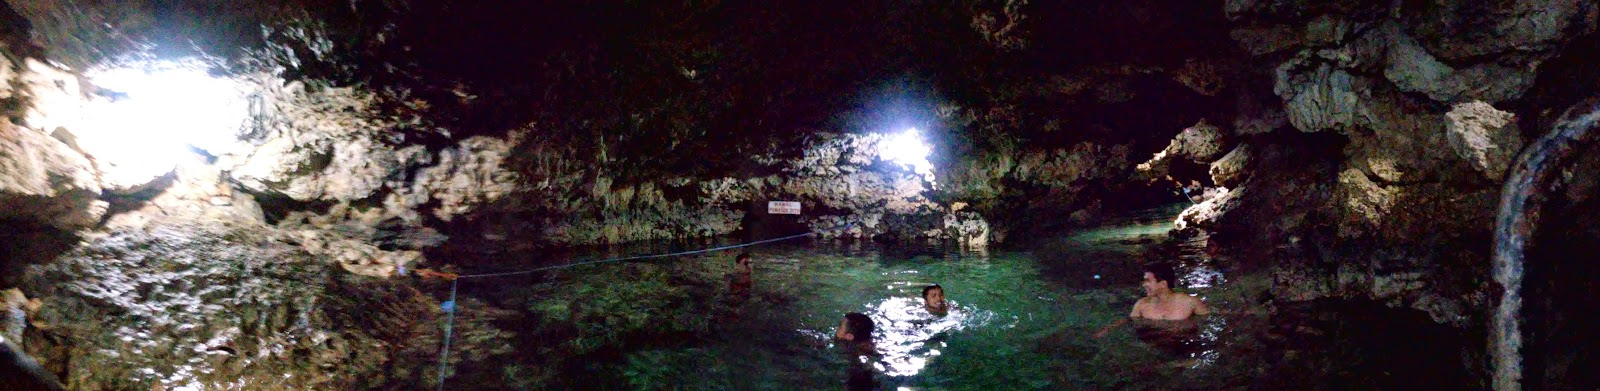 Enchanted Cave Swimming Pool Bolinao